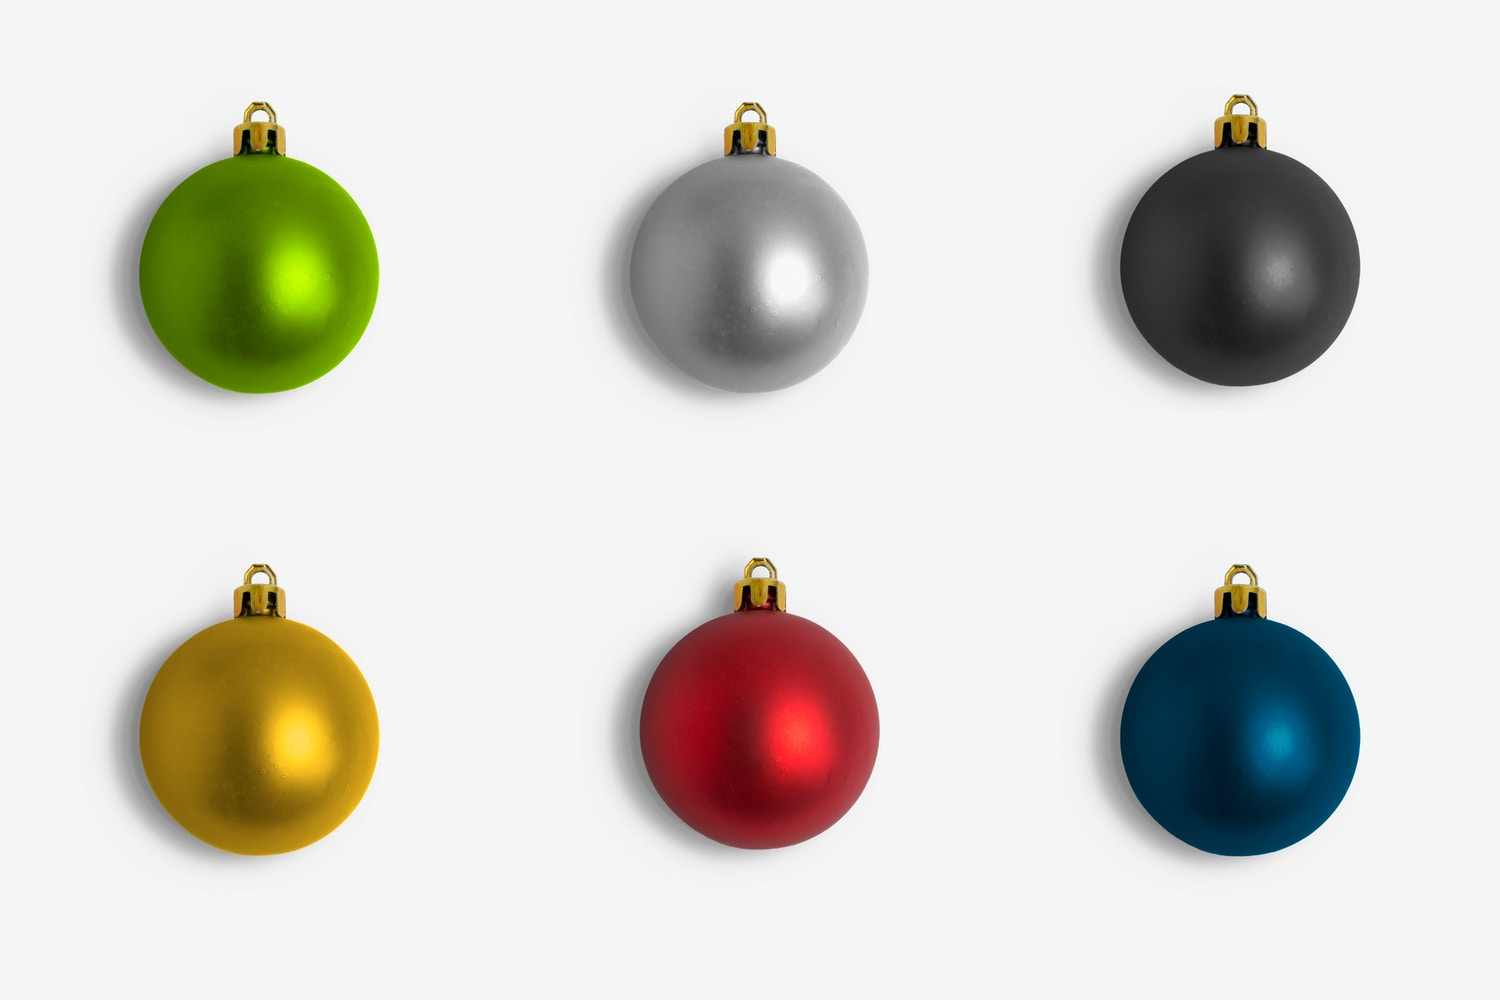 Christmas Colorful Ornaments Smooth Isolate by Original Mockups on Original Mockups